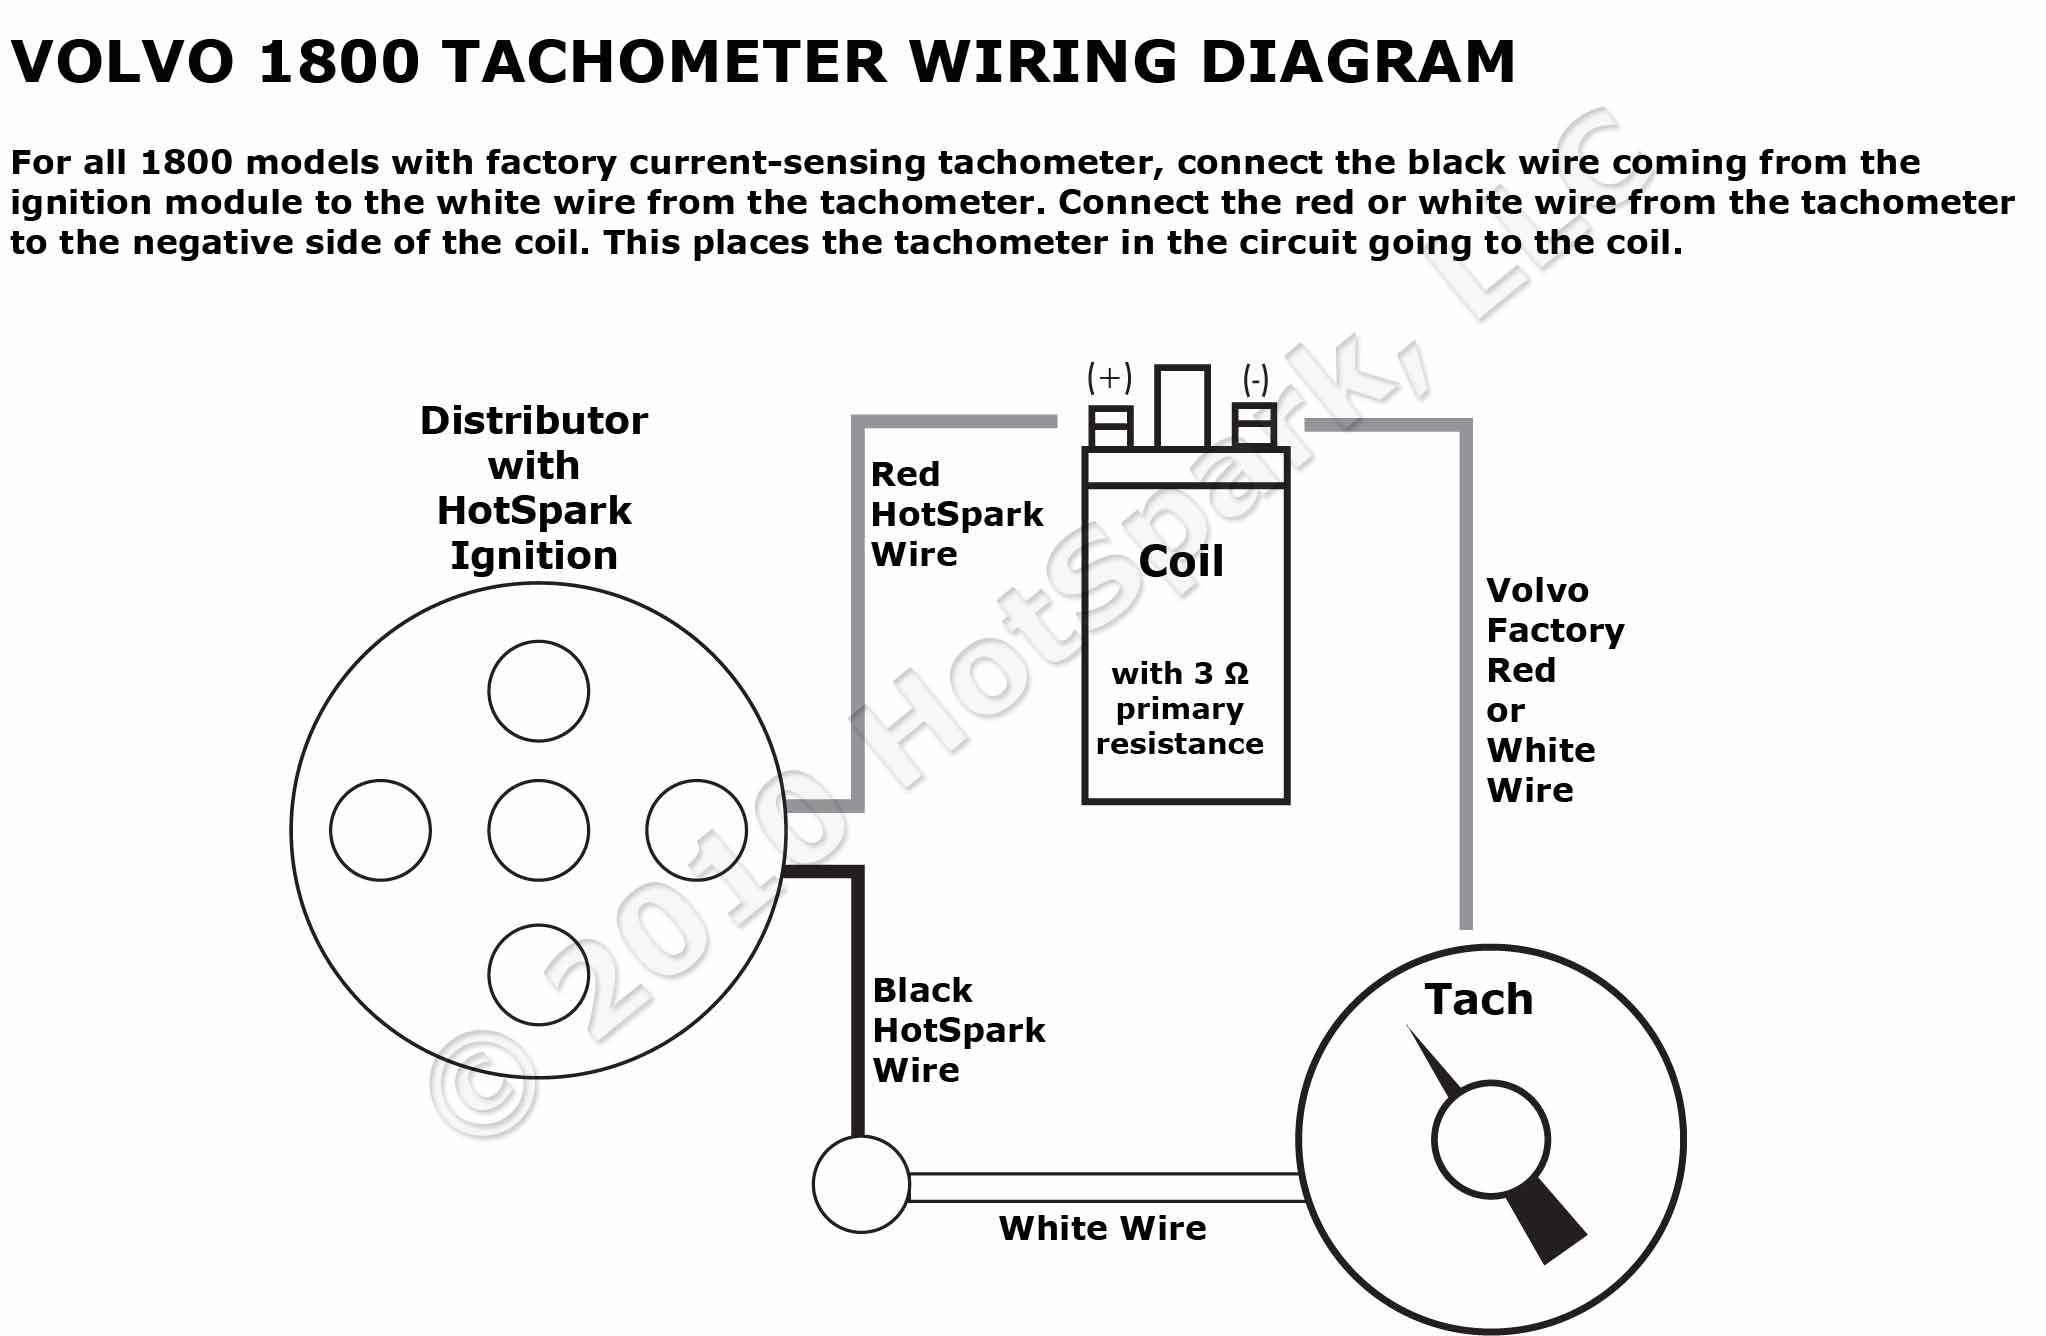 DIAGRAM] Vdo Tachometer Wiring Diagram FULL Version HD Quality Wiring  Diagram - DIAGRAMSENTENCE.VIRTUAL-EDGE.ITvirtual-edge.it